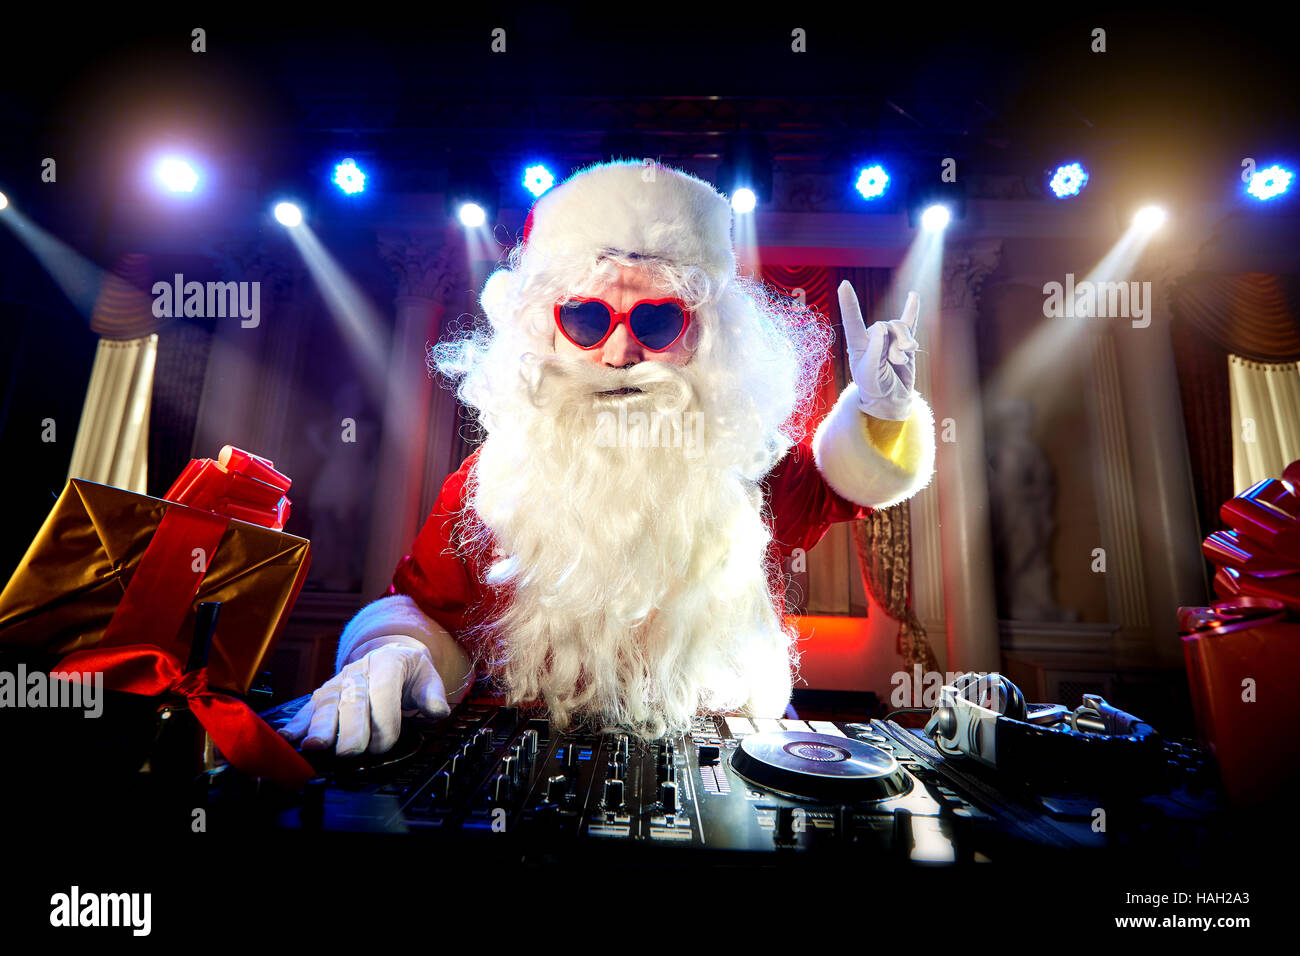 dj santa claus mixing at the party christmas stock photo. Black Bedroom Furniture Sets. Home Design Ideas